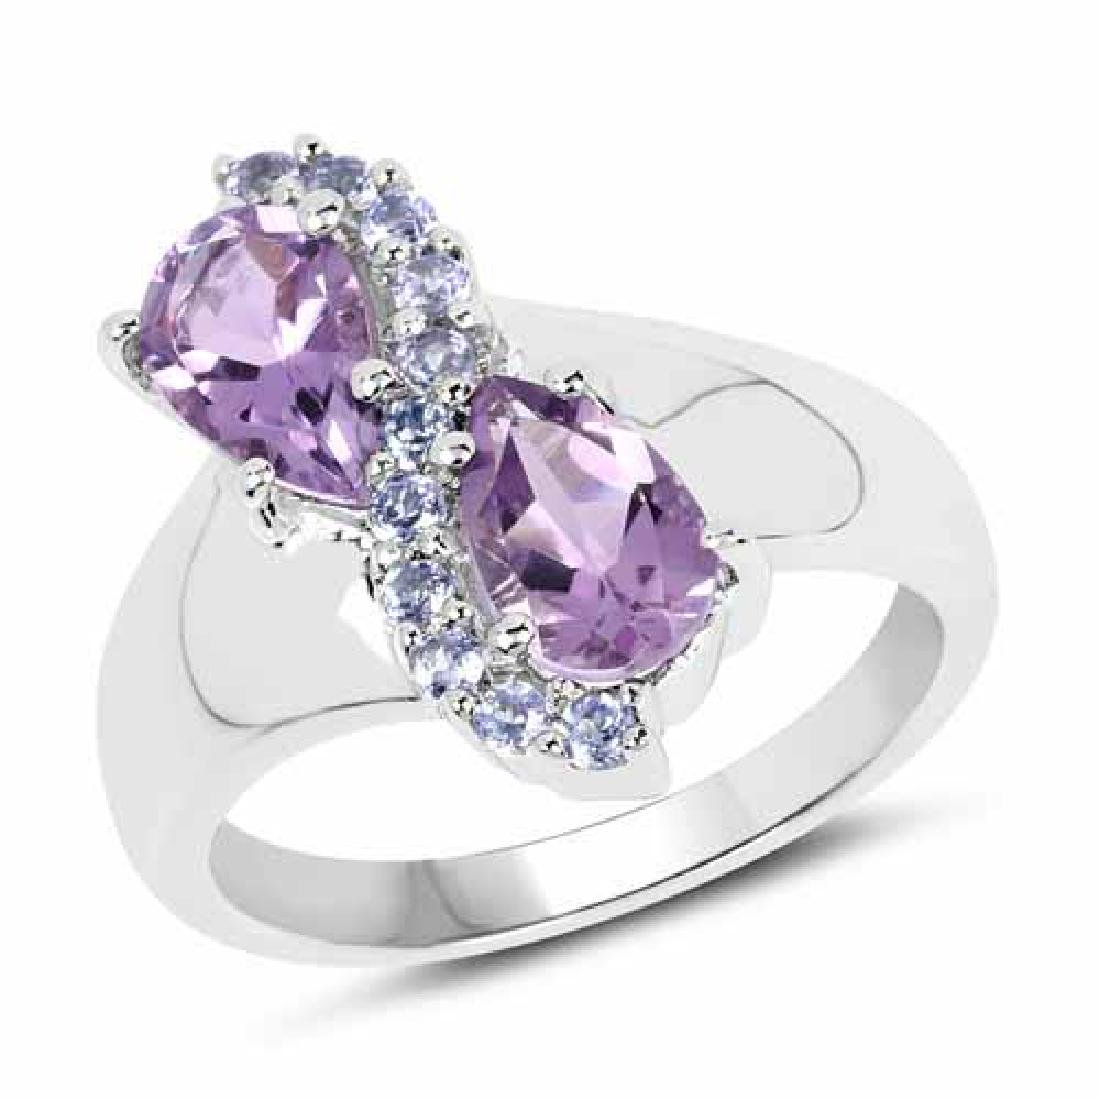 1.87 Carat Genuine Amethyst and Tanzanite .925 Sterling